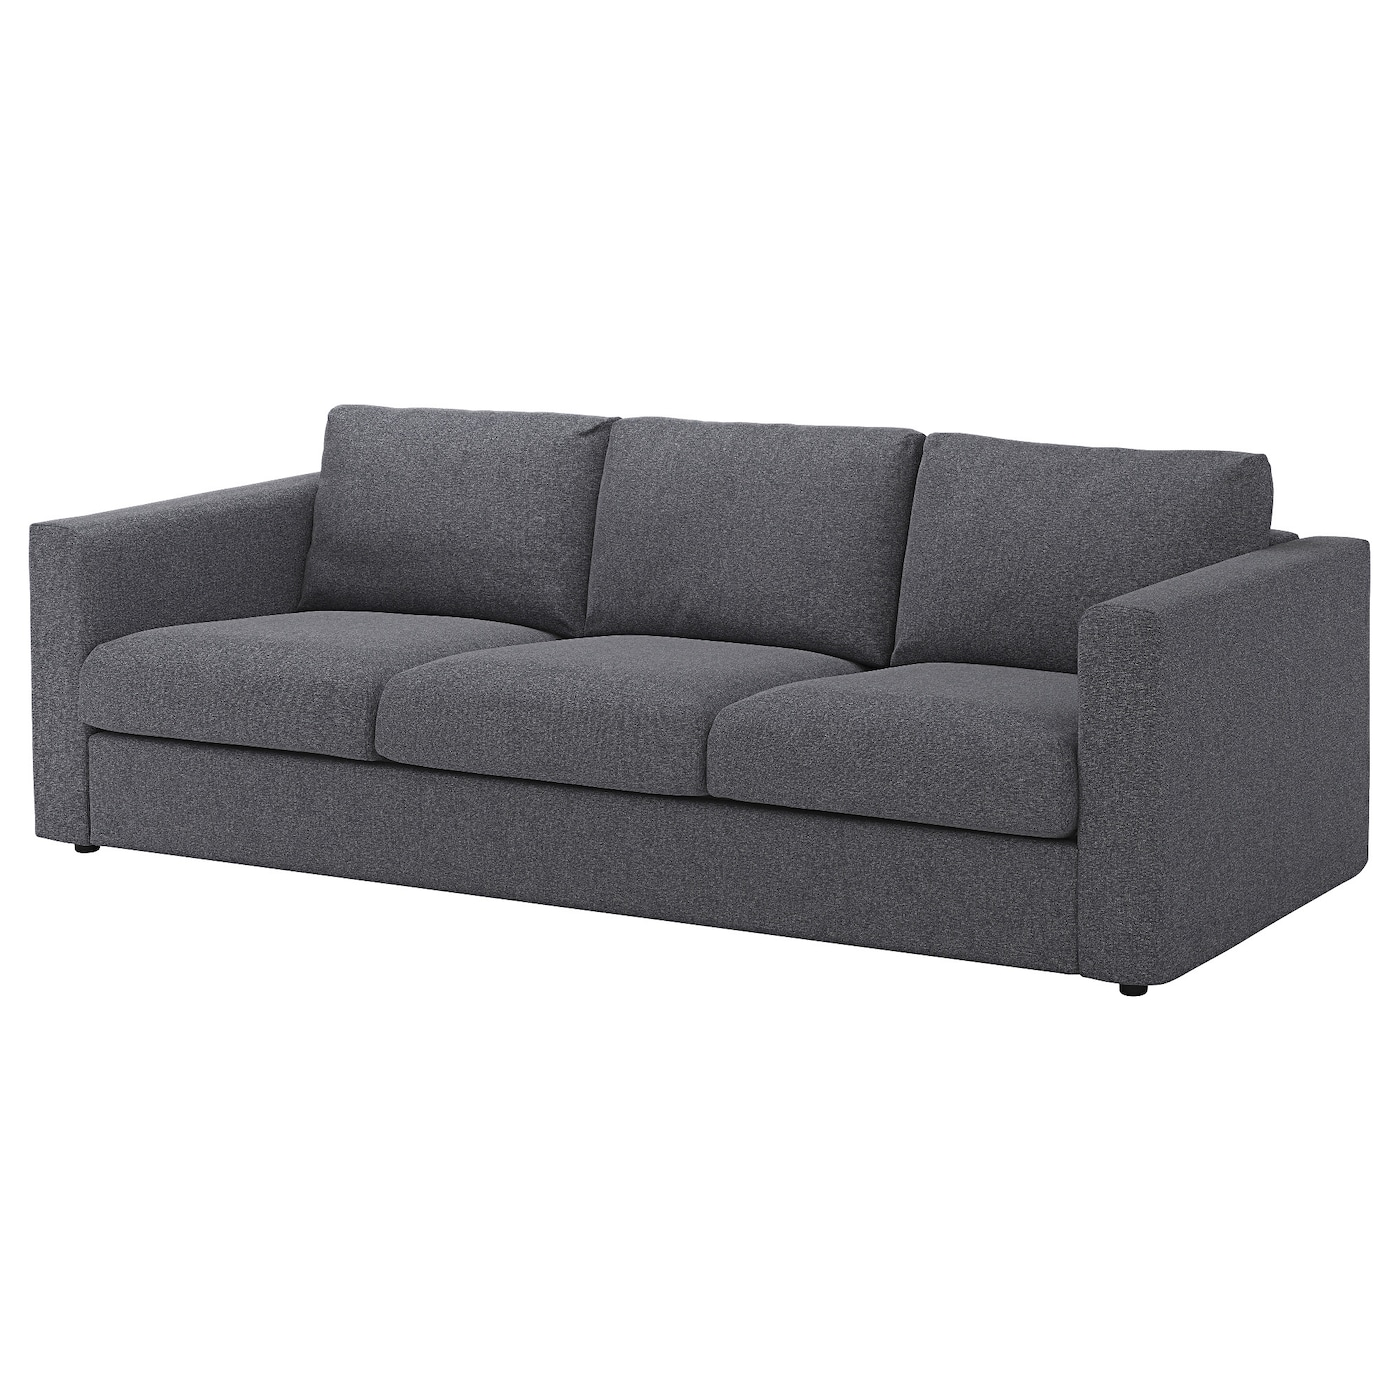 Ikea Vimle 3 Seat Sofa The Cover Is Easy To Keep Clean Since It